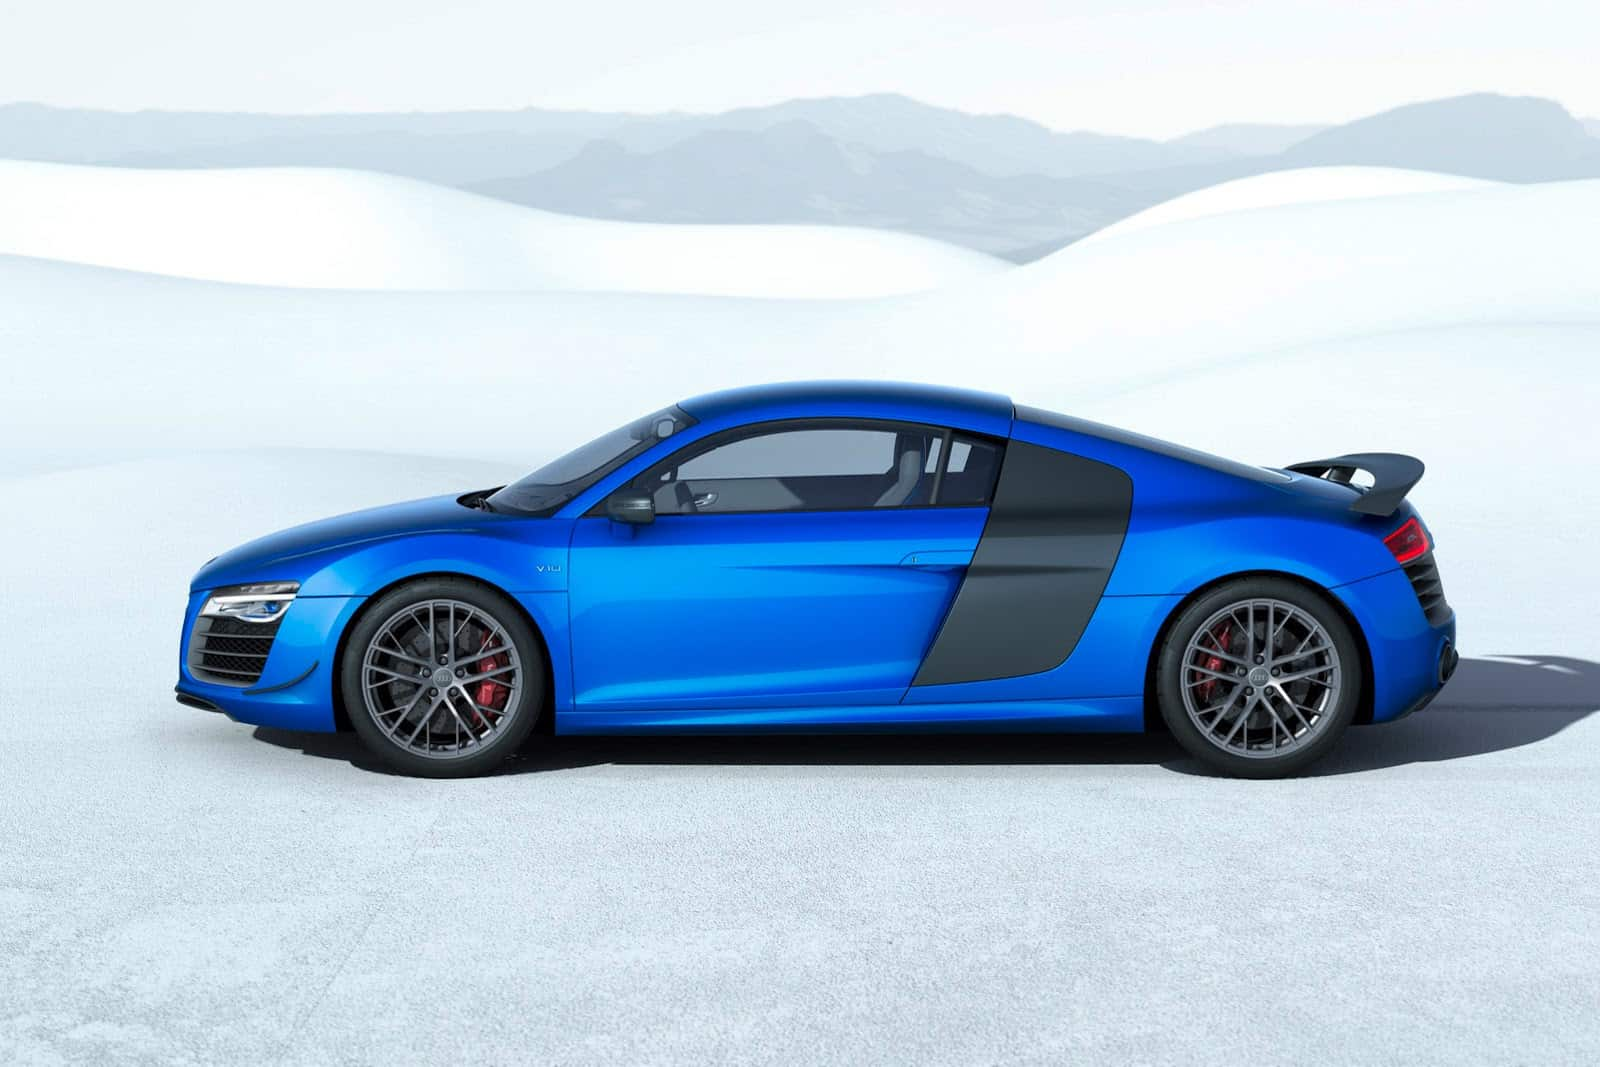 audi r8 lmx du v10 et des phares laser au programme. Black Bedroom Furniture Sets. Home Design Ideas